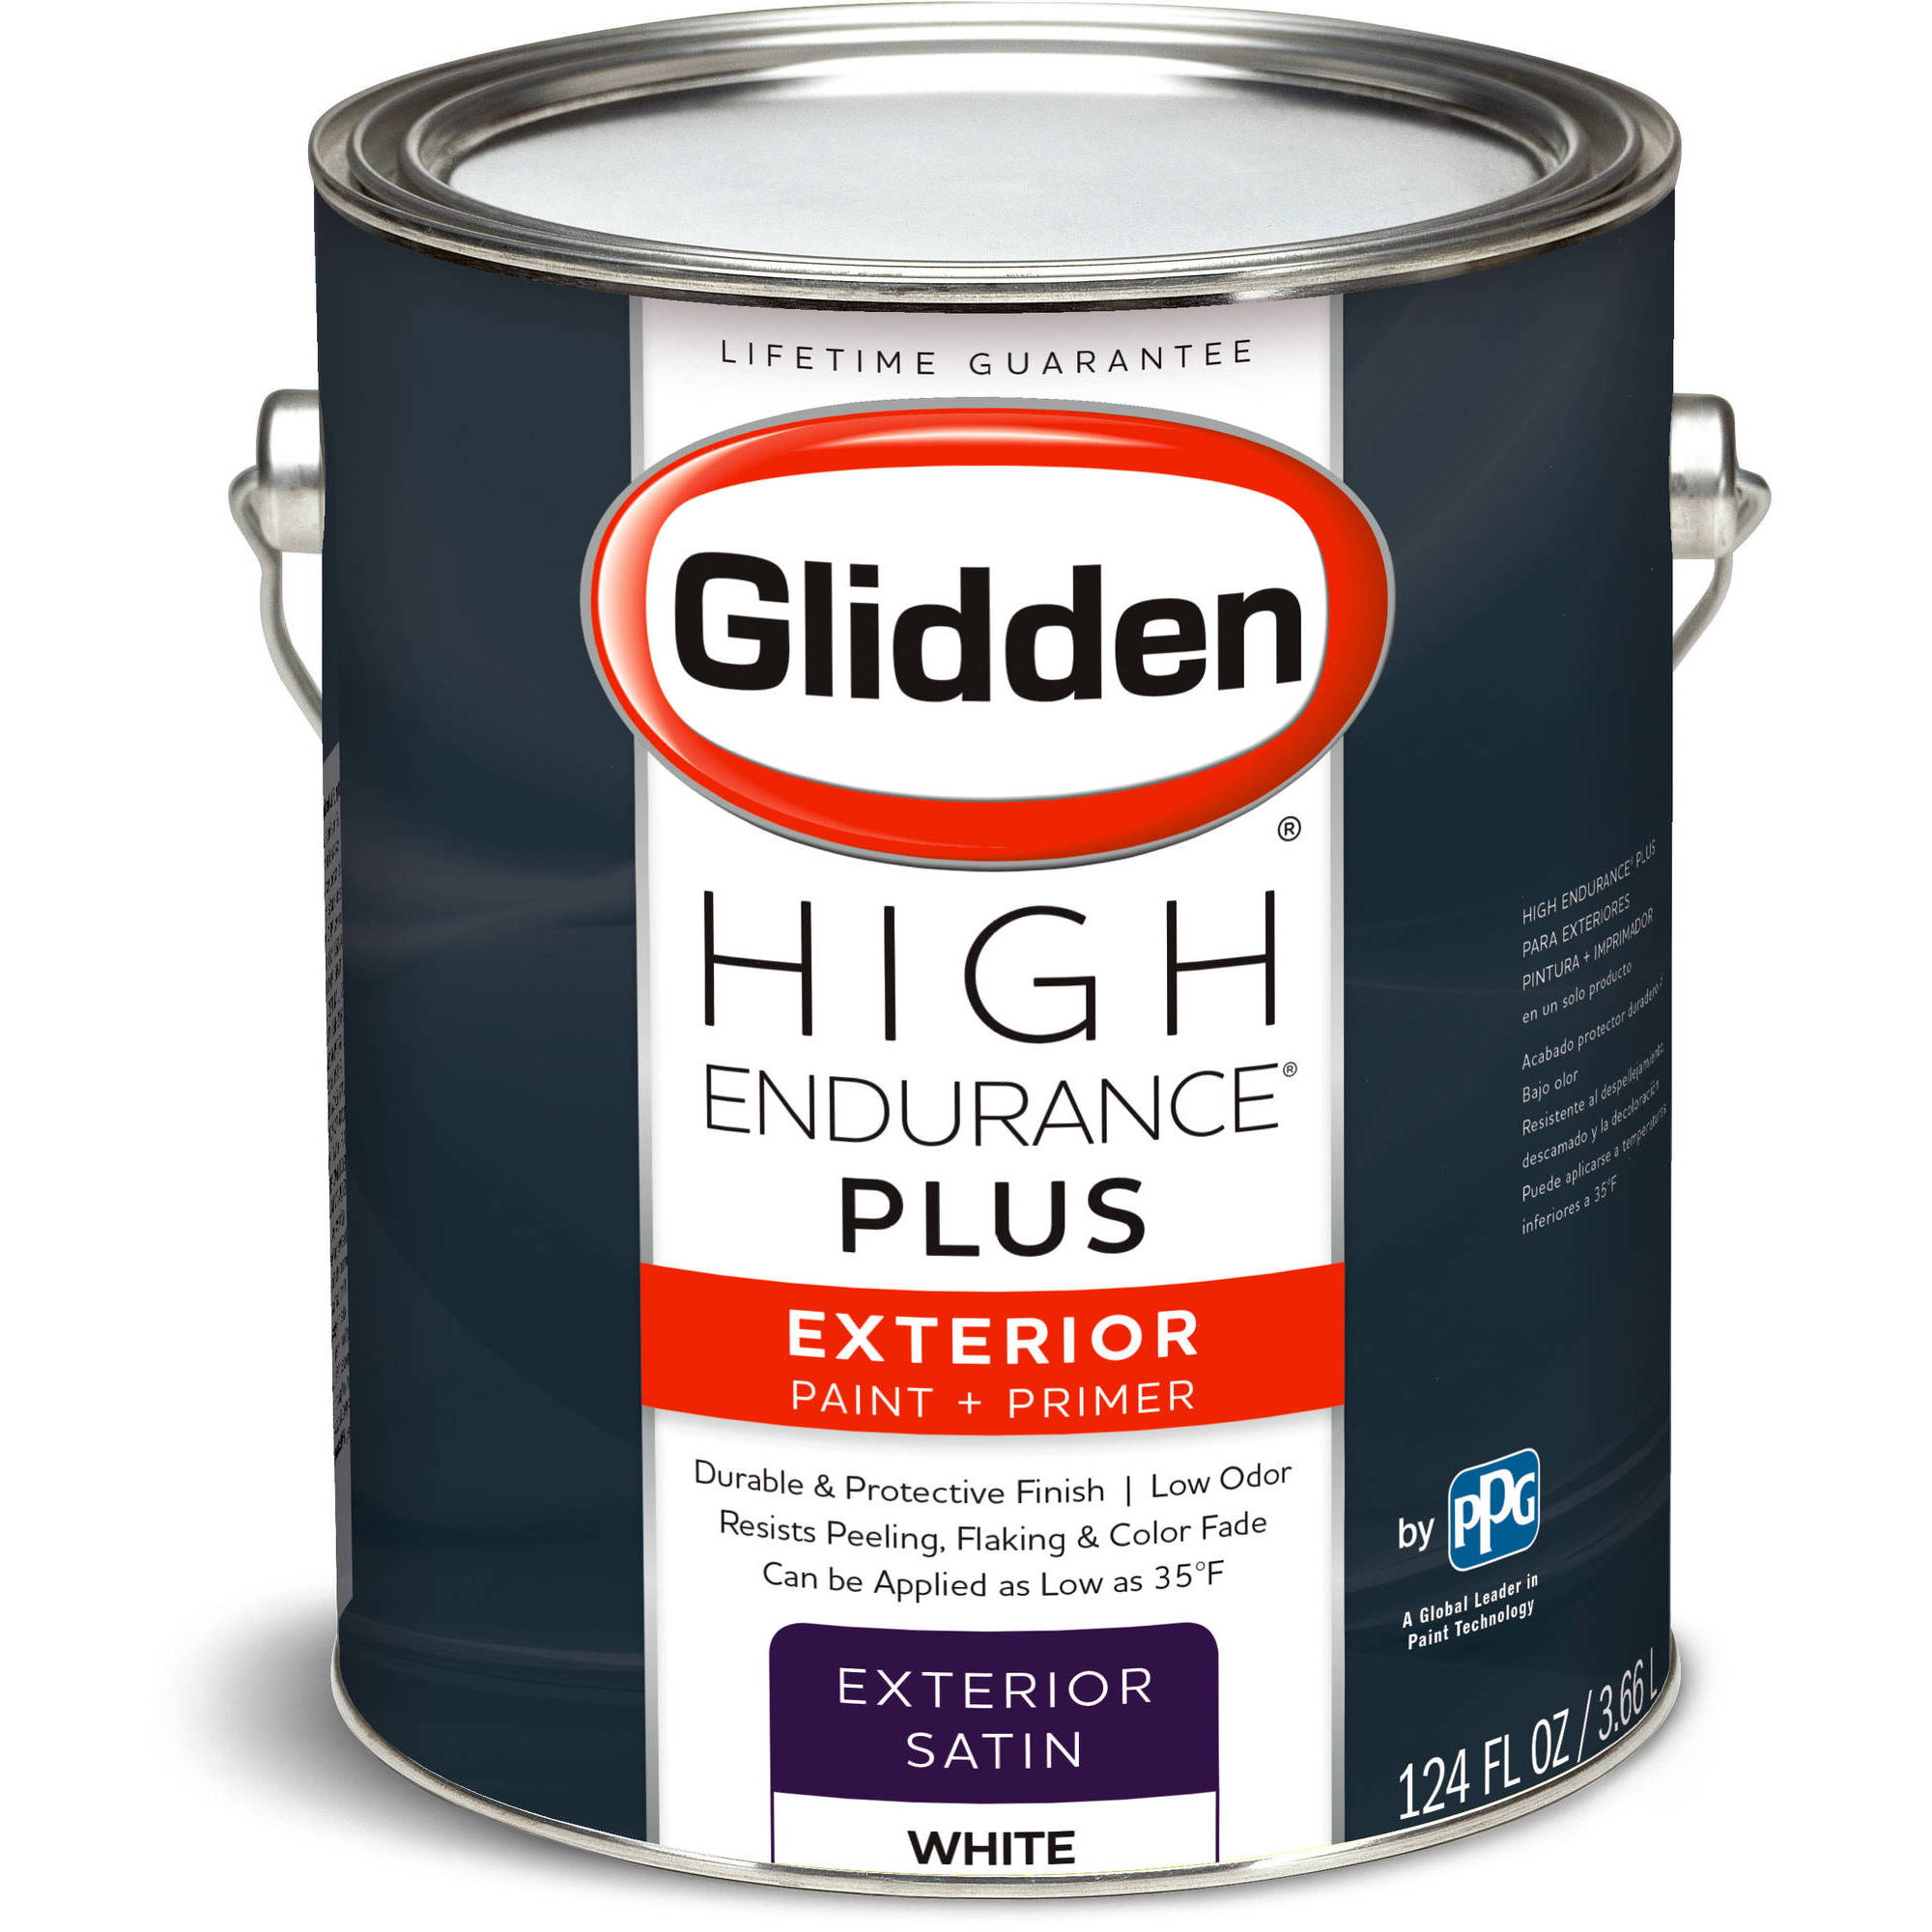 Glidden High Endurance Plus  Exterior Paint and Primer  Satin Finish  Ready  Mix White  1 Gallon   Walmart comGlidden High Endurance Plus  Exterior Paint and Primer  Satin  . Glidden Exterior Paint Color Chart. Home Design Ideas